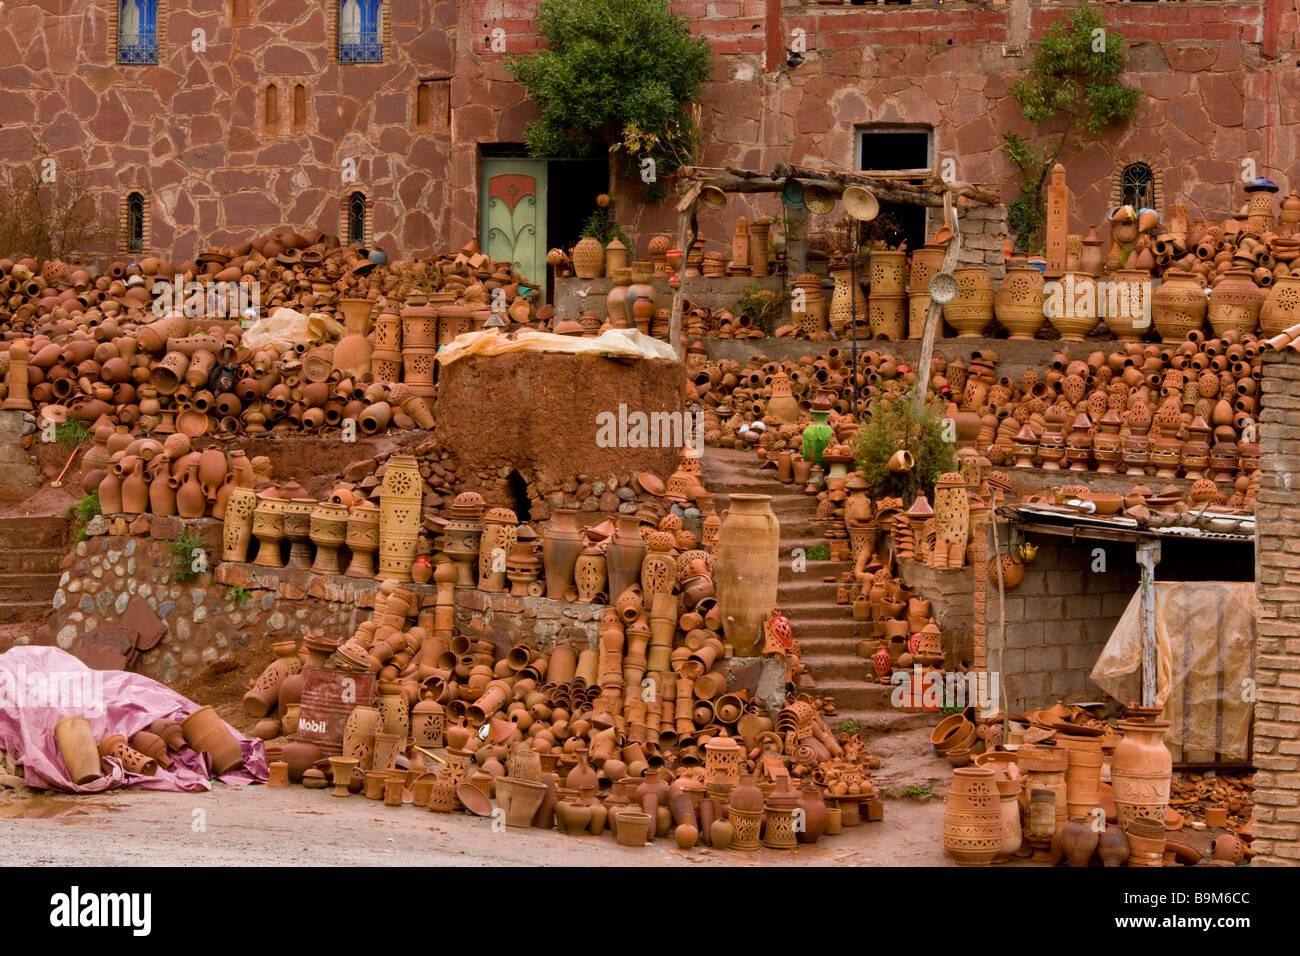 Extraordinary pottery display by roadside in Ourika Valley high Atlas mountains Morocco Morocco - Stock Image